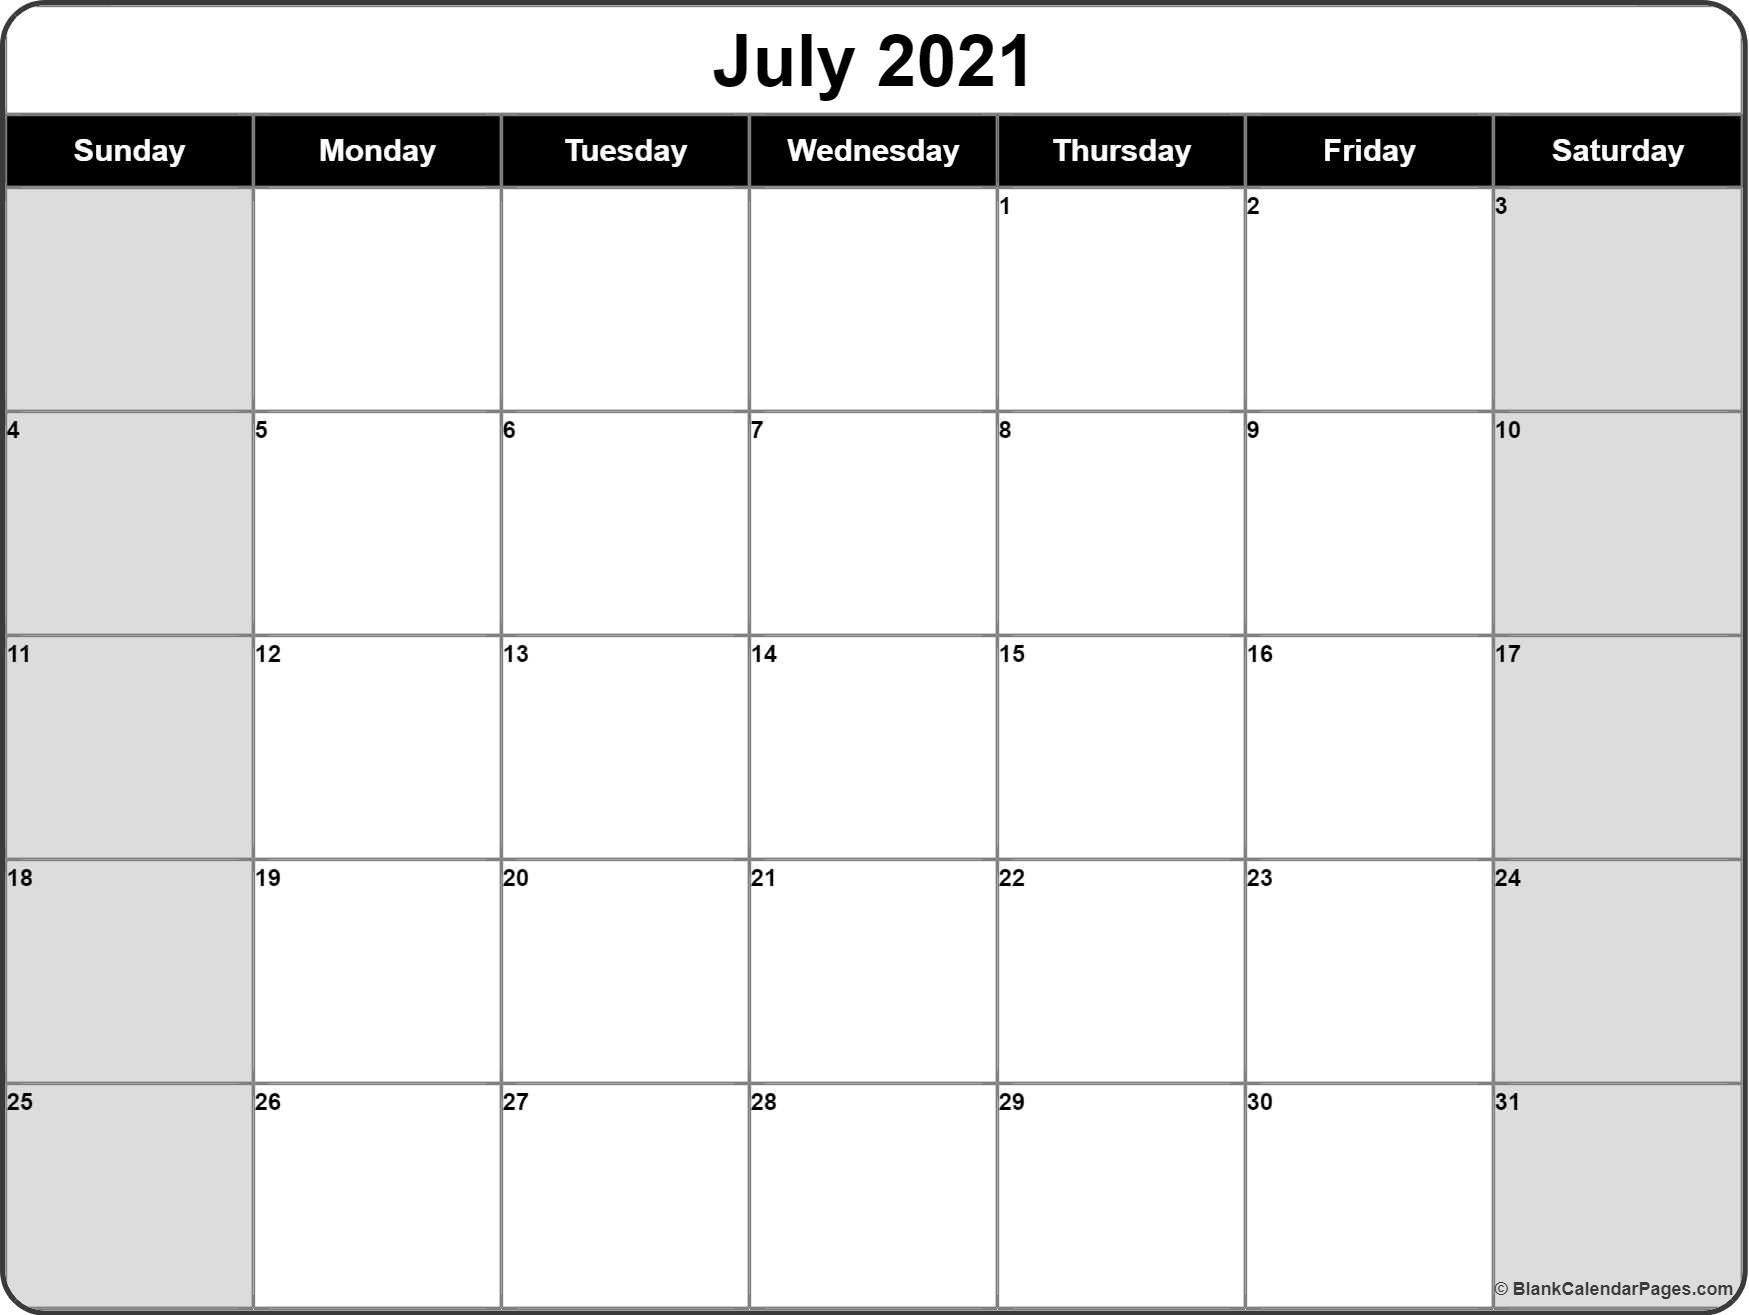 July 2021 Calendar   Free Printable Calendar Templates pertaining to Print Free July 2021 Calendar Without Downloading